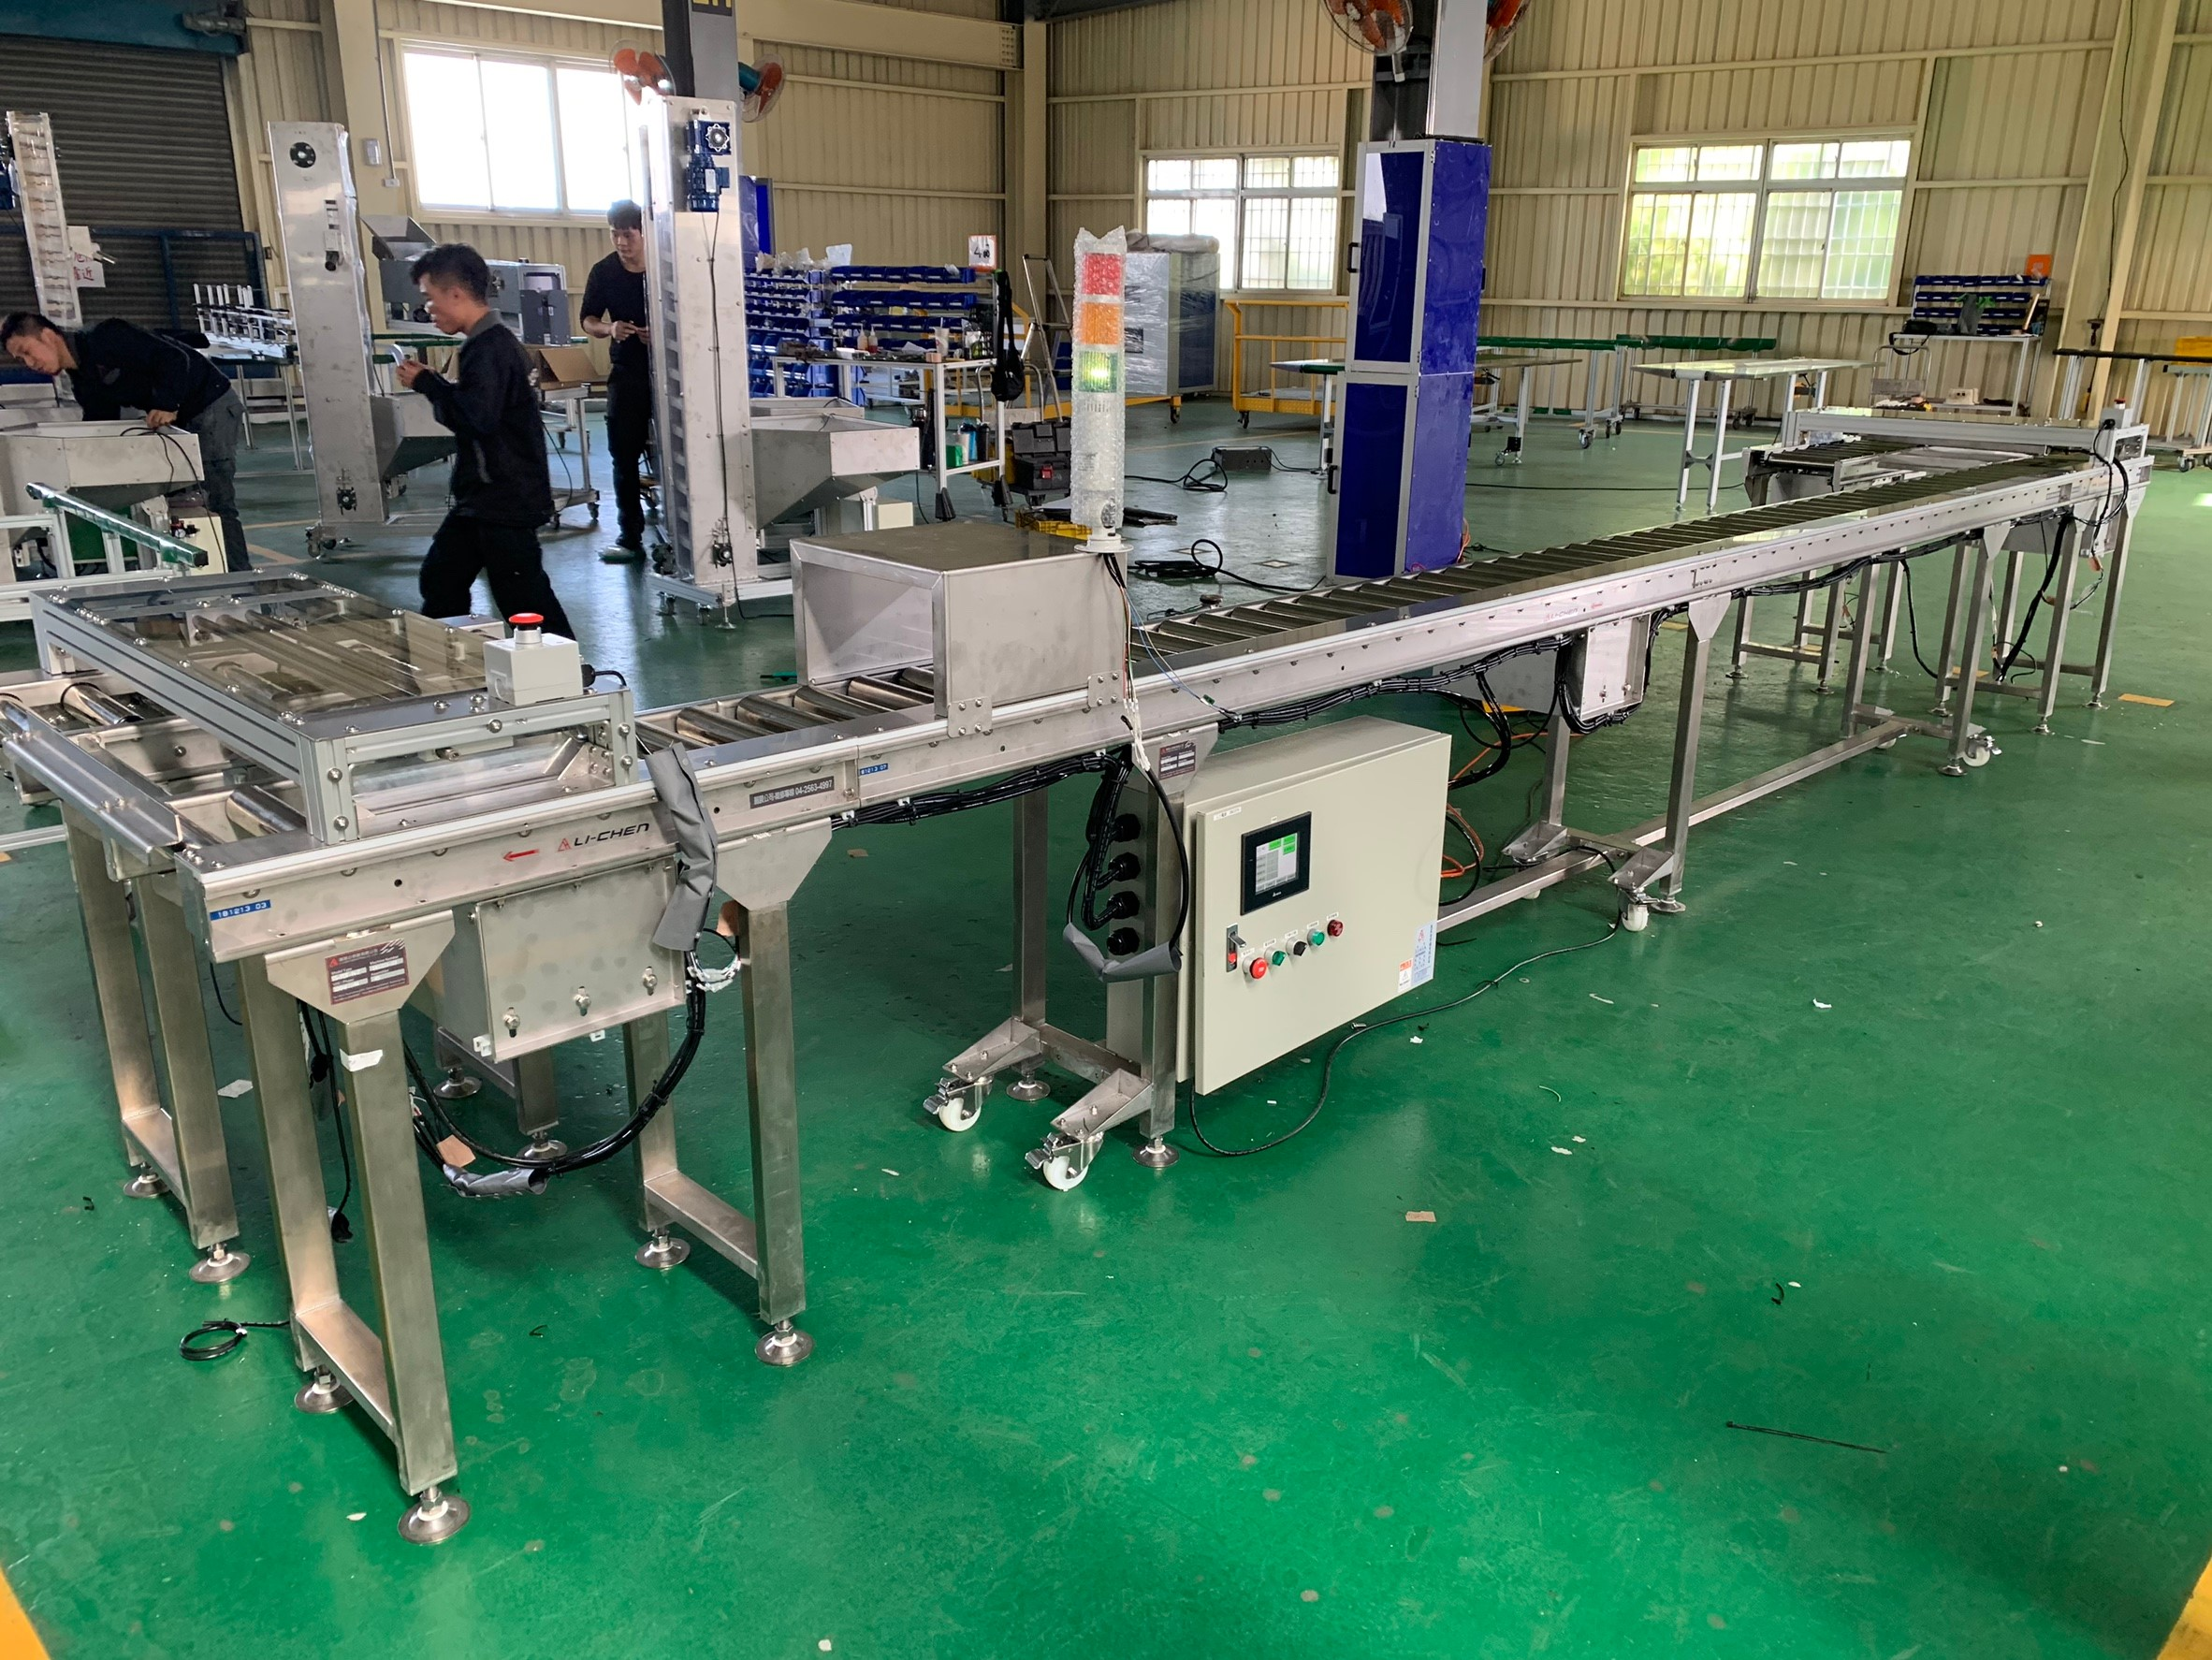 Circulating stainless steel power roller transfer conveyor - APL CONVEYOR ENTERPRISE CO.,LTD Circulating stainless steel power roller transfer conveyor - APL CONVEYOR ENTERPRISE CO.,LTD